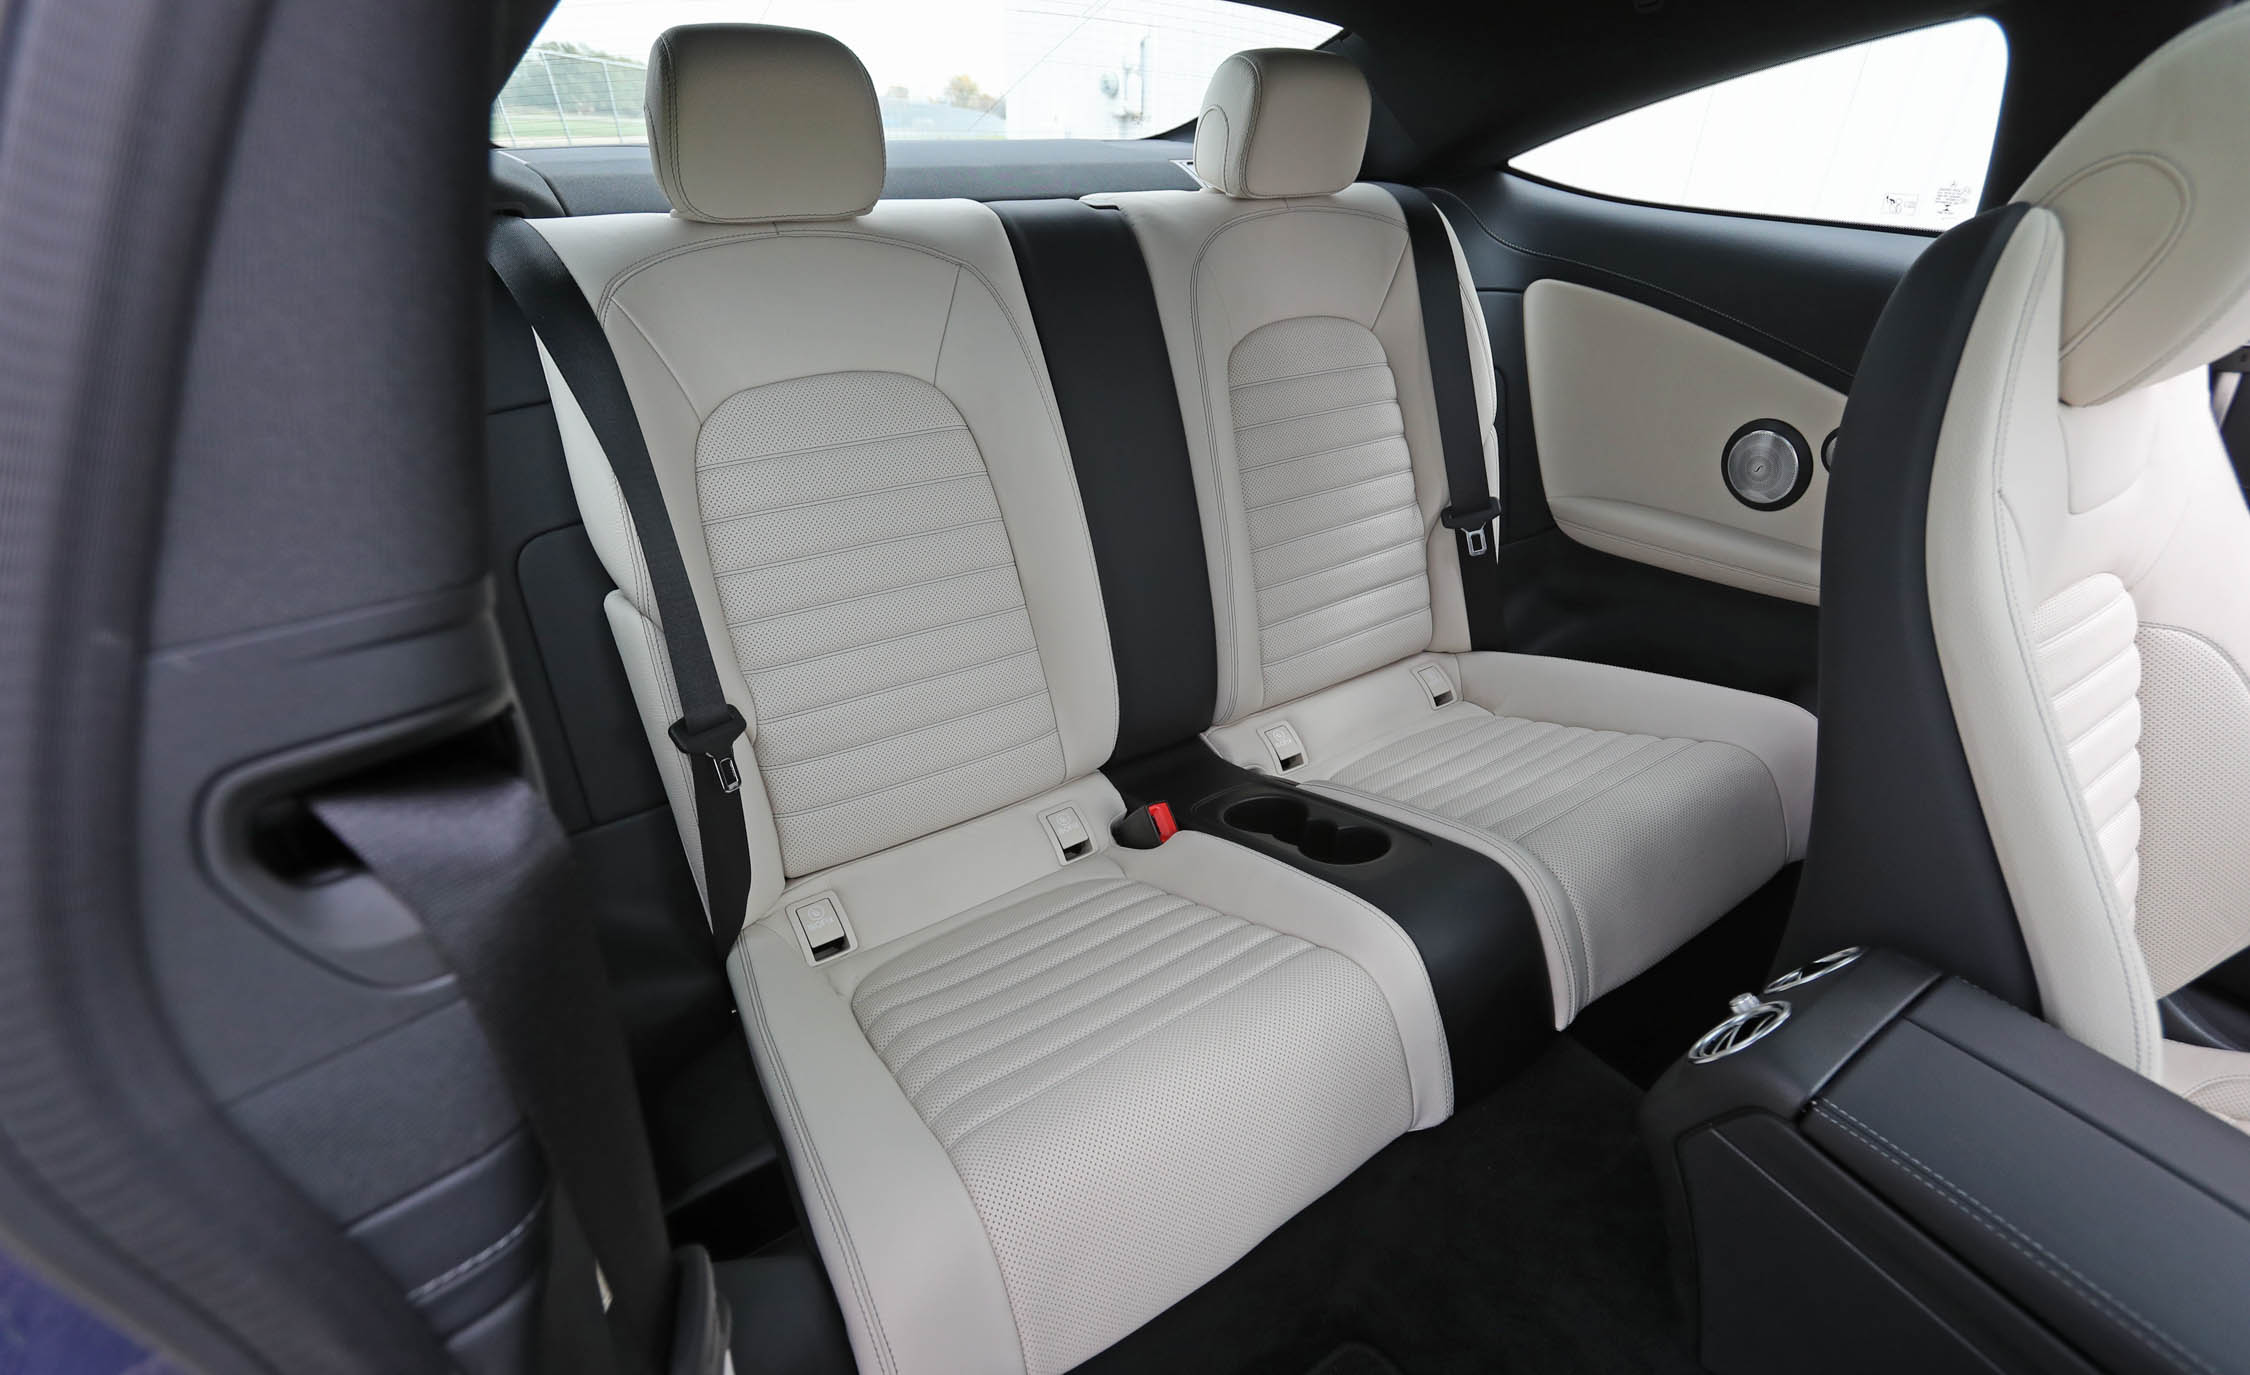 2017 Mercedes Benz C300 4MATIC Coupe Interior Seats Rear (Photo 29 of 44)